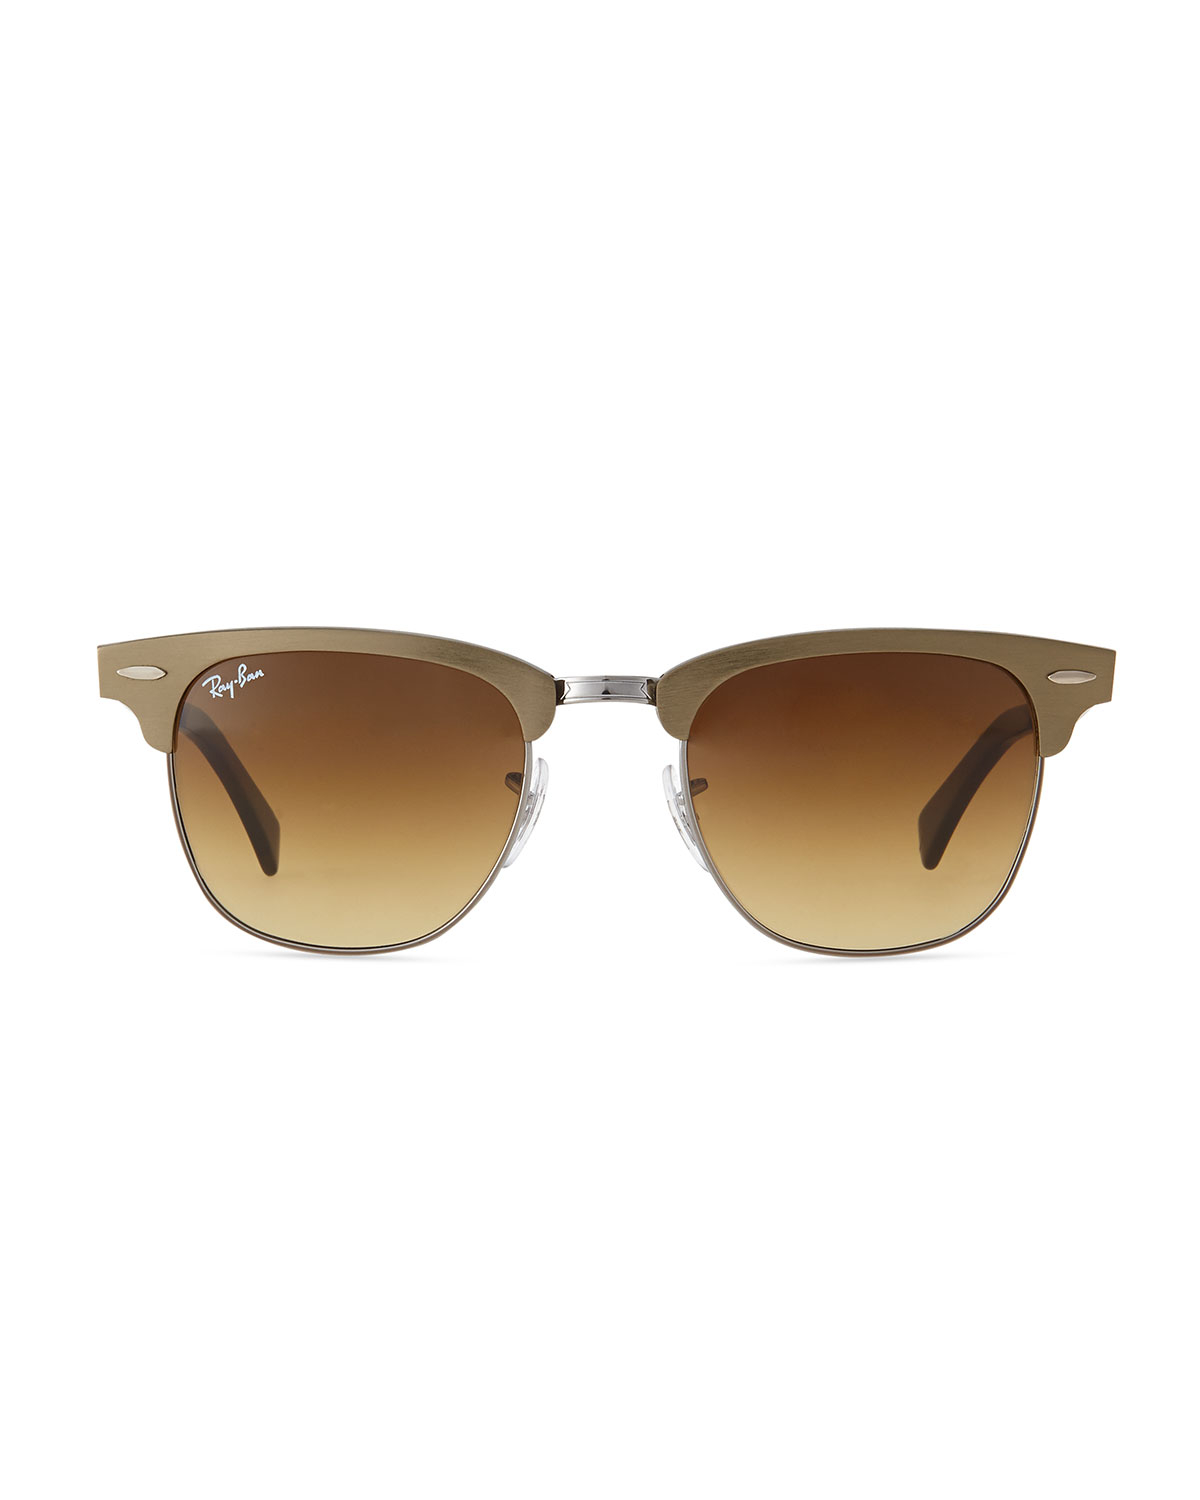 Ray Ban Golden Frame Glasses : Ray-ban Metal Frame Clubmaster Sunglasses in Gold (BRONZE ...